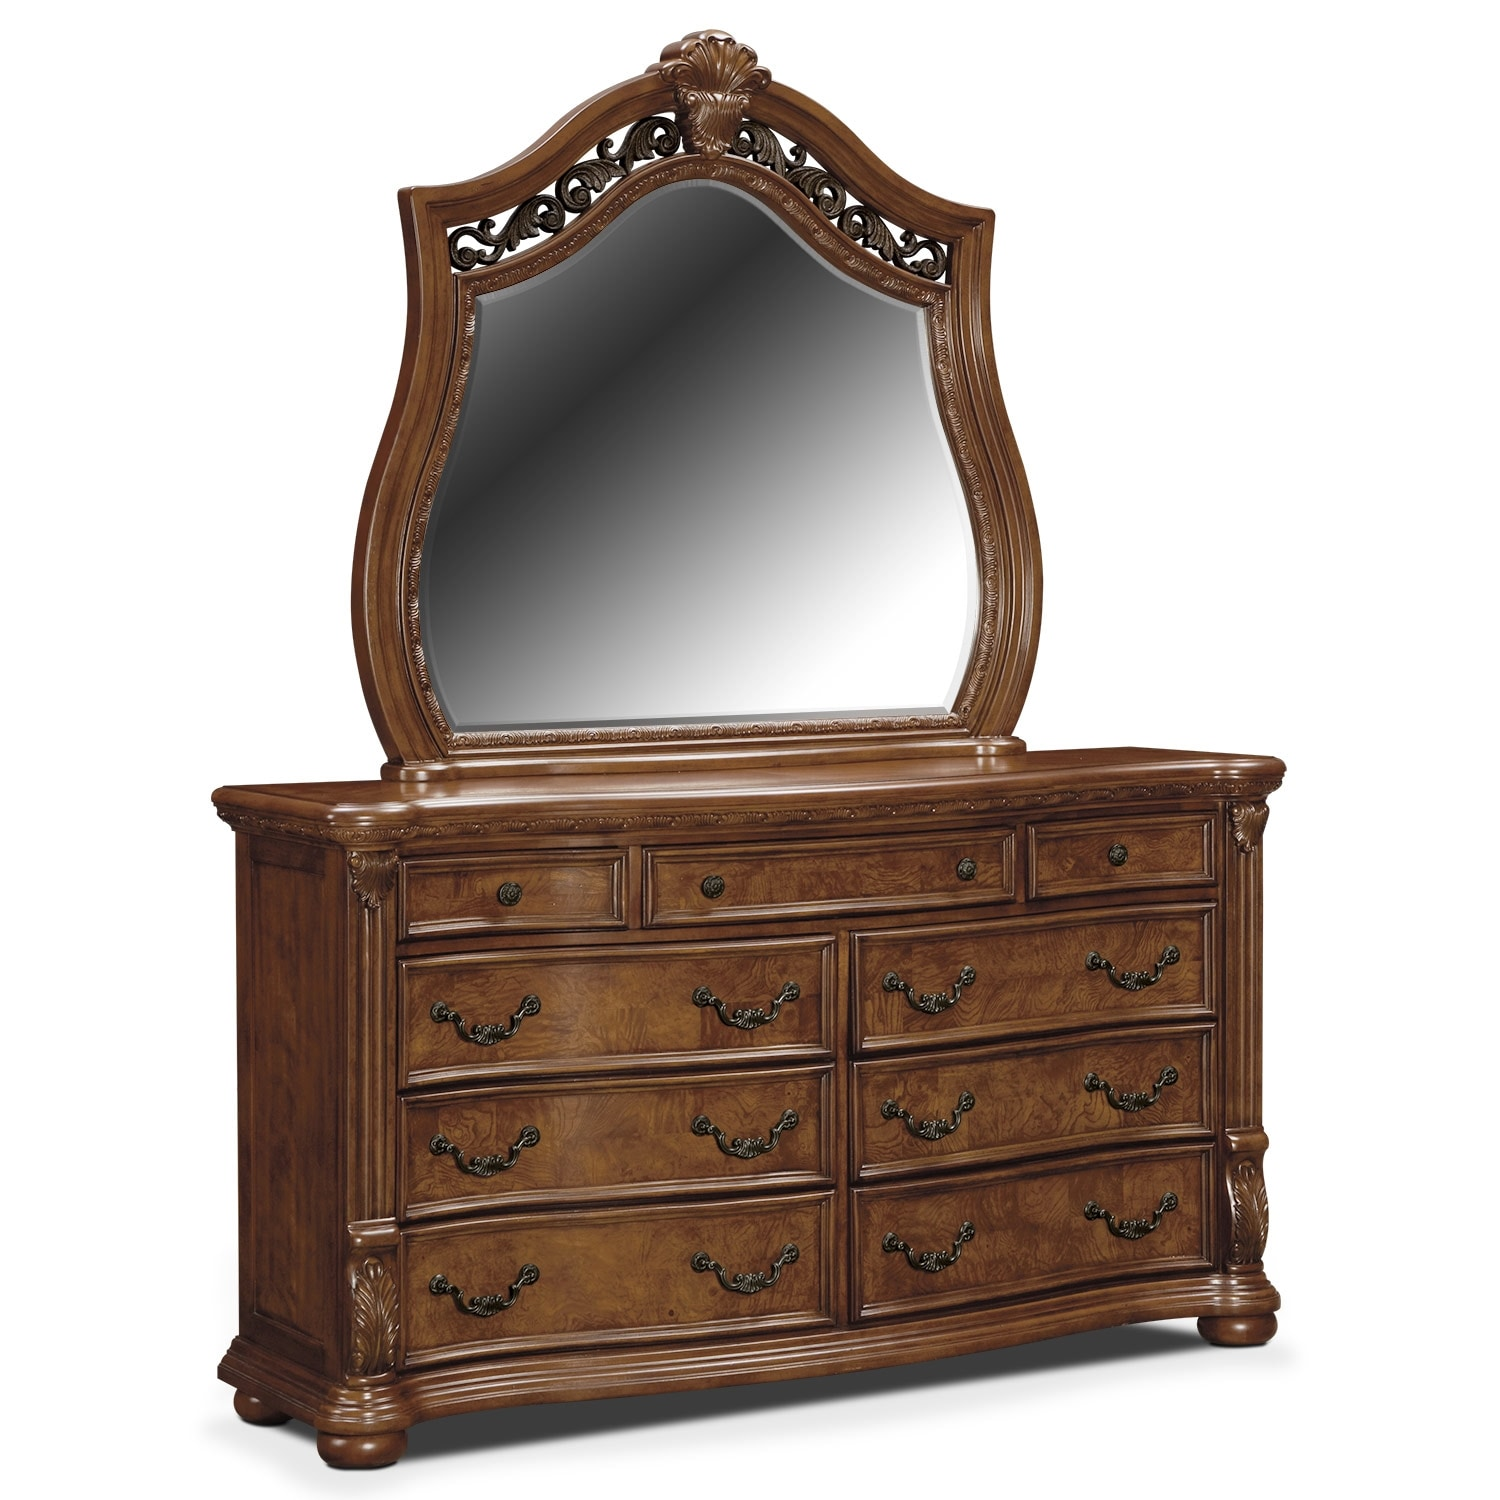 Morocco Dresser and Mirror - Pecan